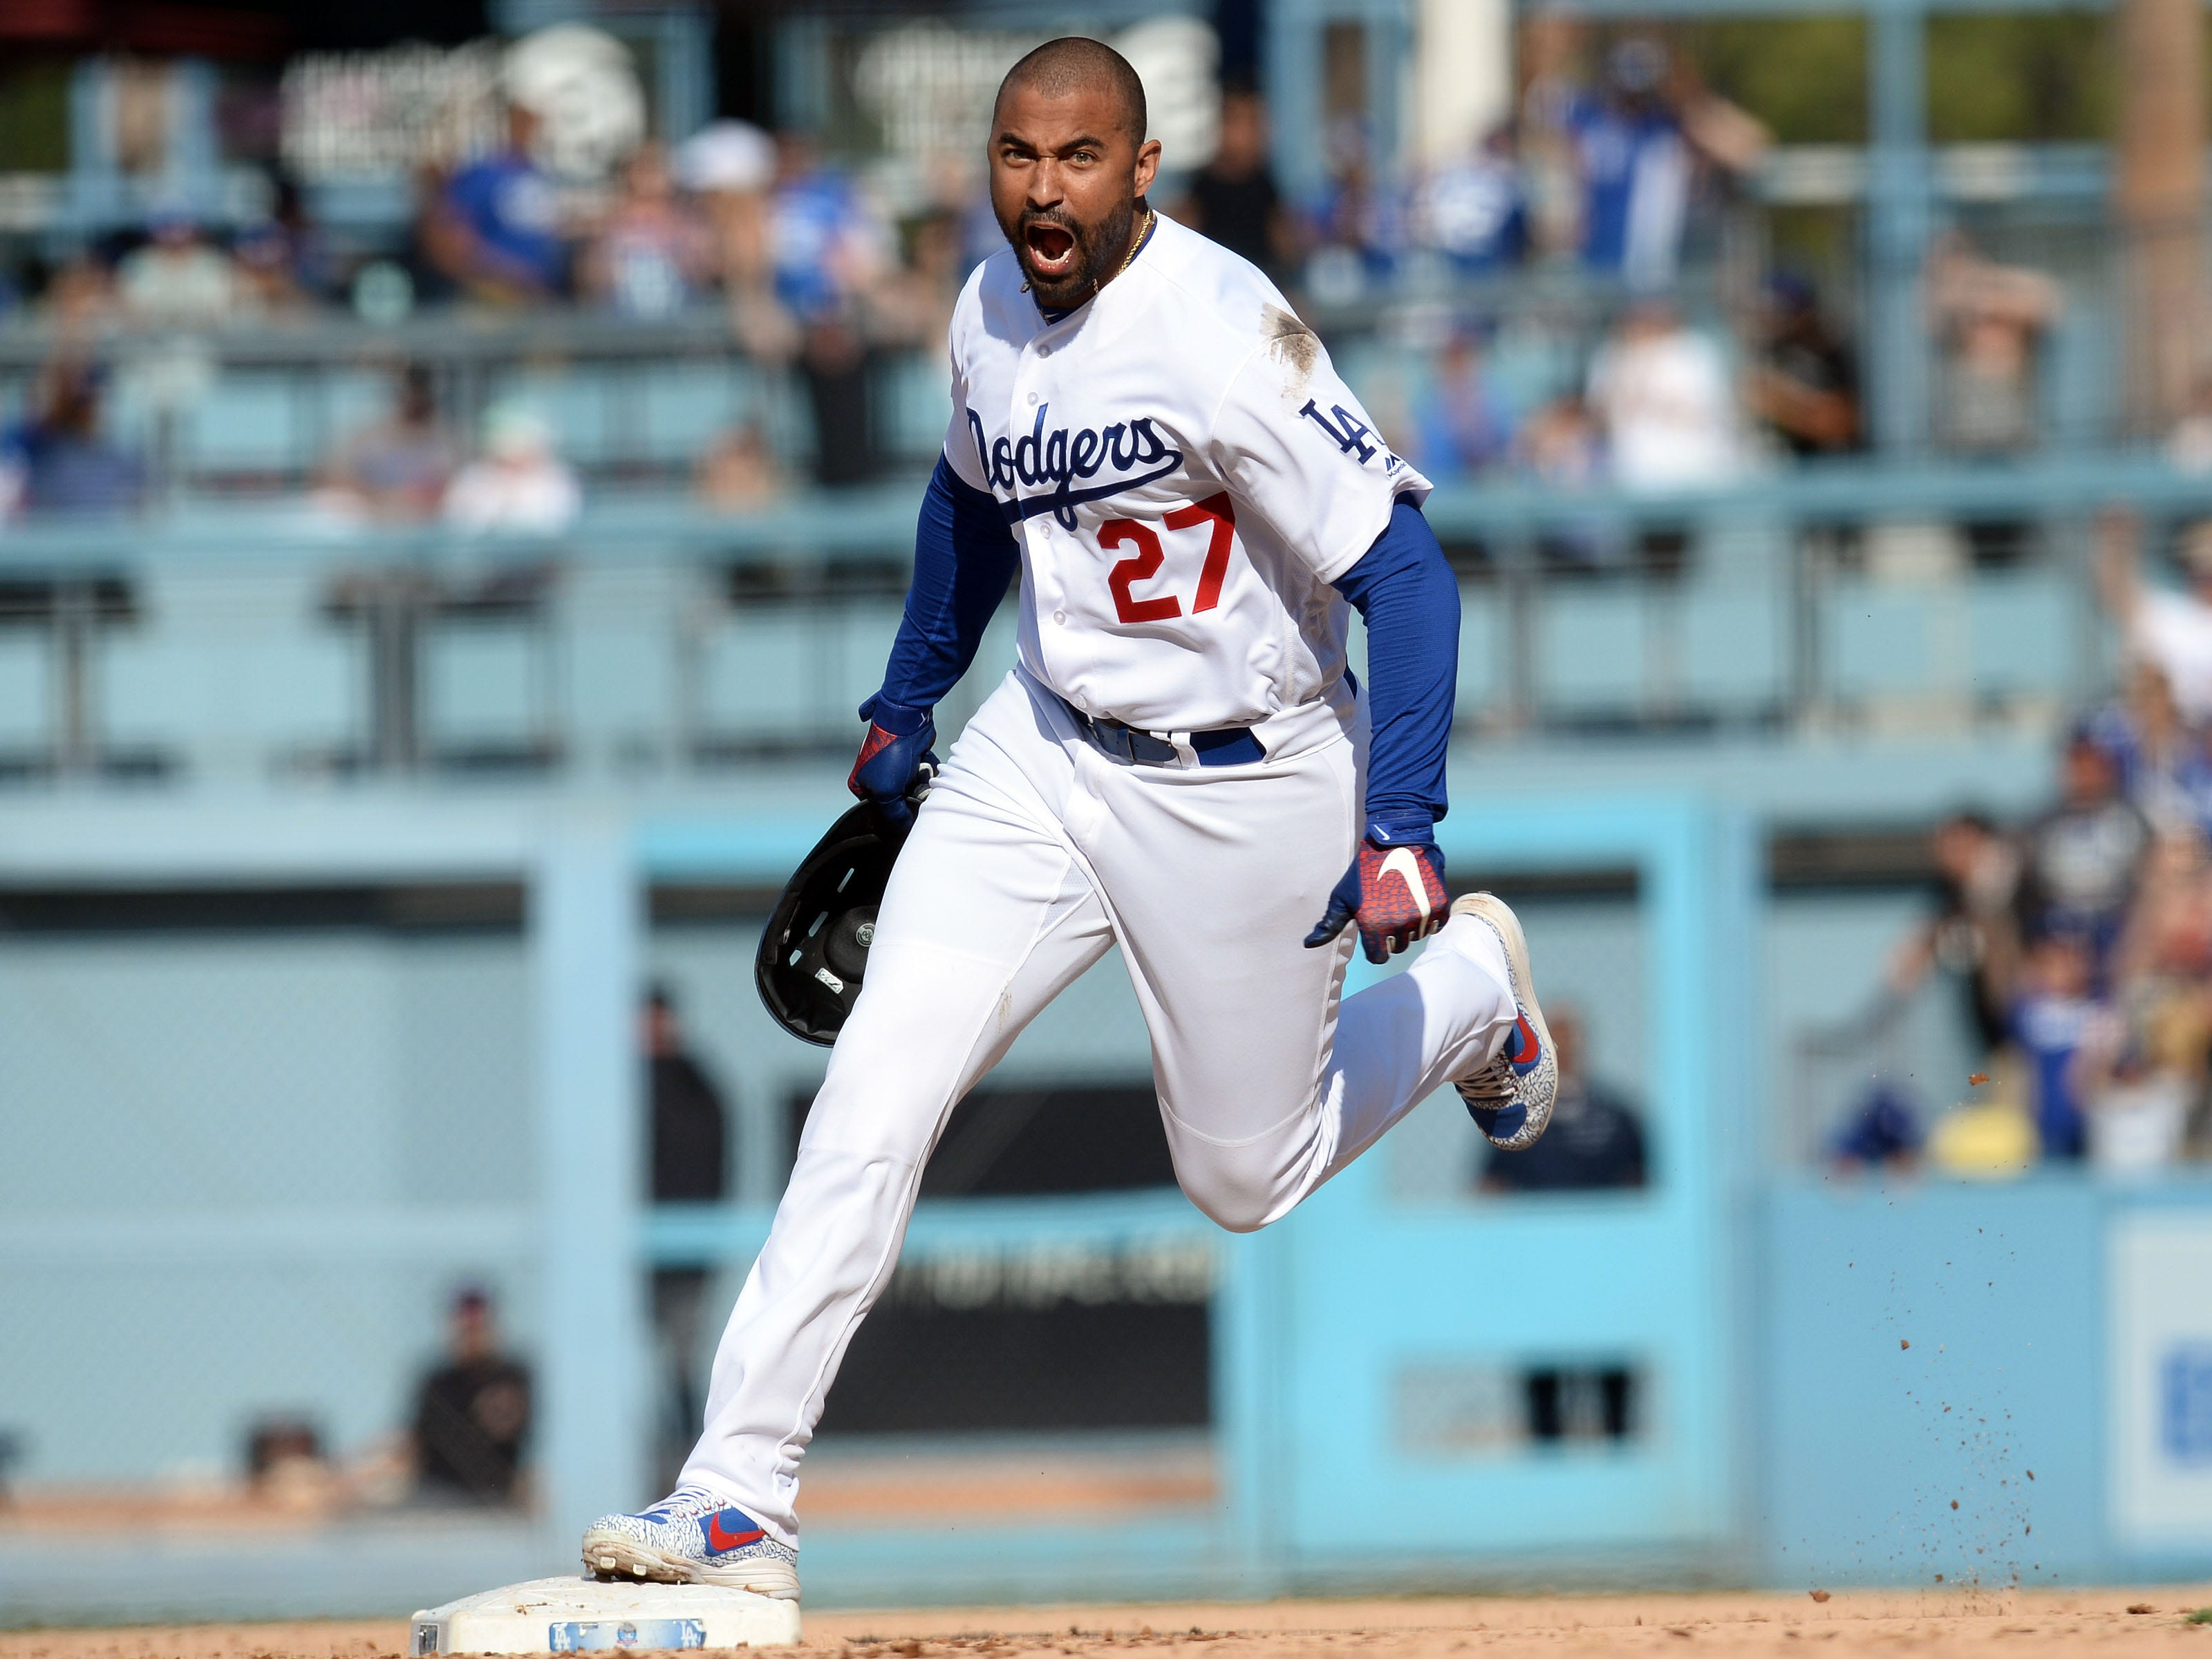 September 2, 2018; Los Angeles, CA, USA; Los Angeles Dodgers left fielder Matt Kemp (27) reacts after hitting a two run RBI walk off double against the Arizona Diamondbacks in the ninth inning at Dodger Stadium. Mandatory Credit: Gary A. Vasquez-USA TODAY Sports